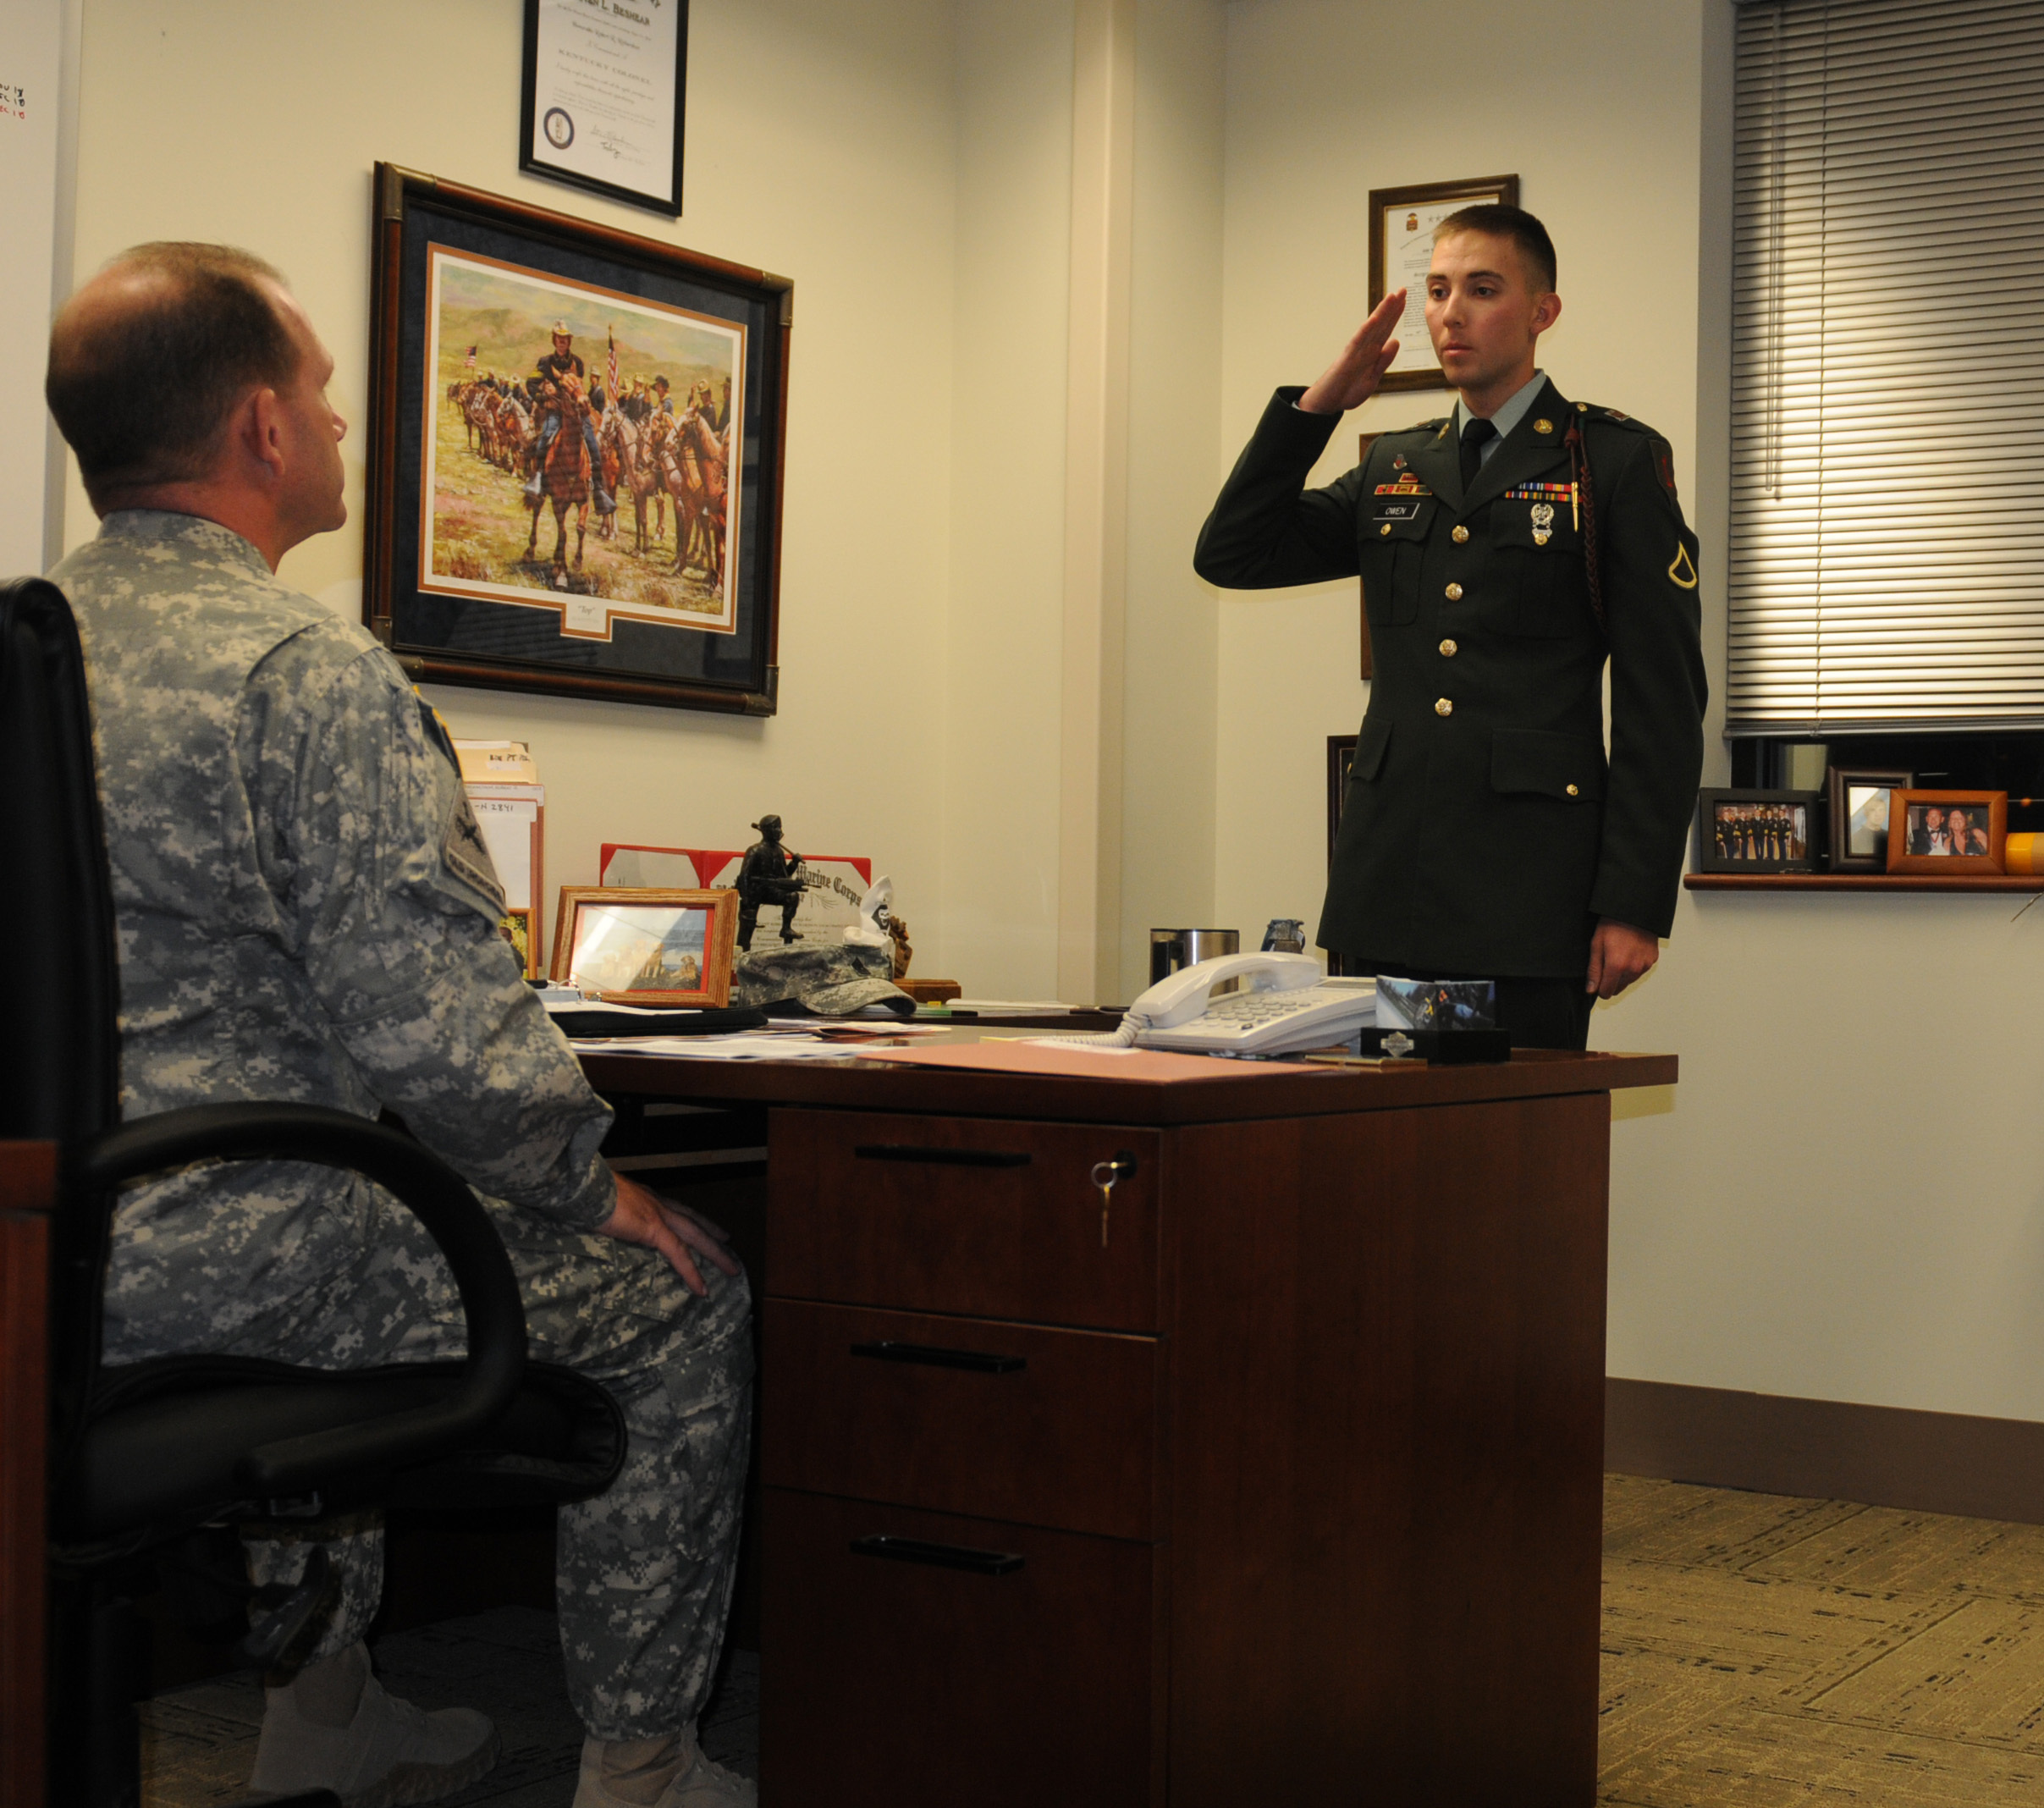 Soldier saluting a superior officer seated behind a desk